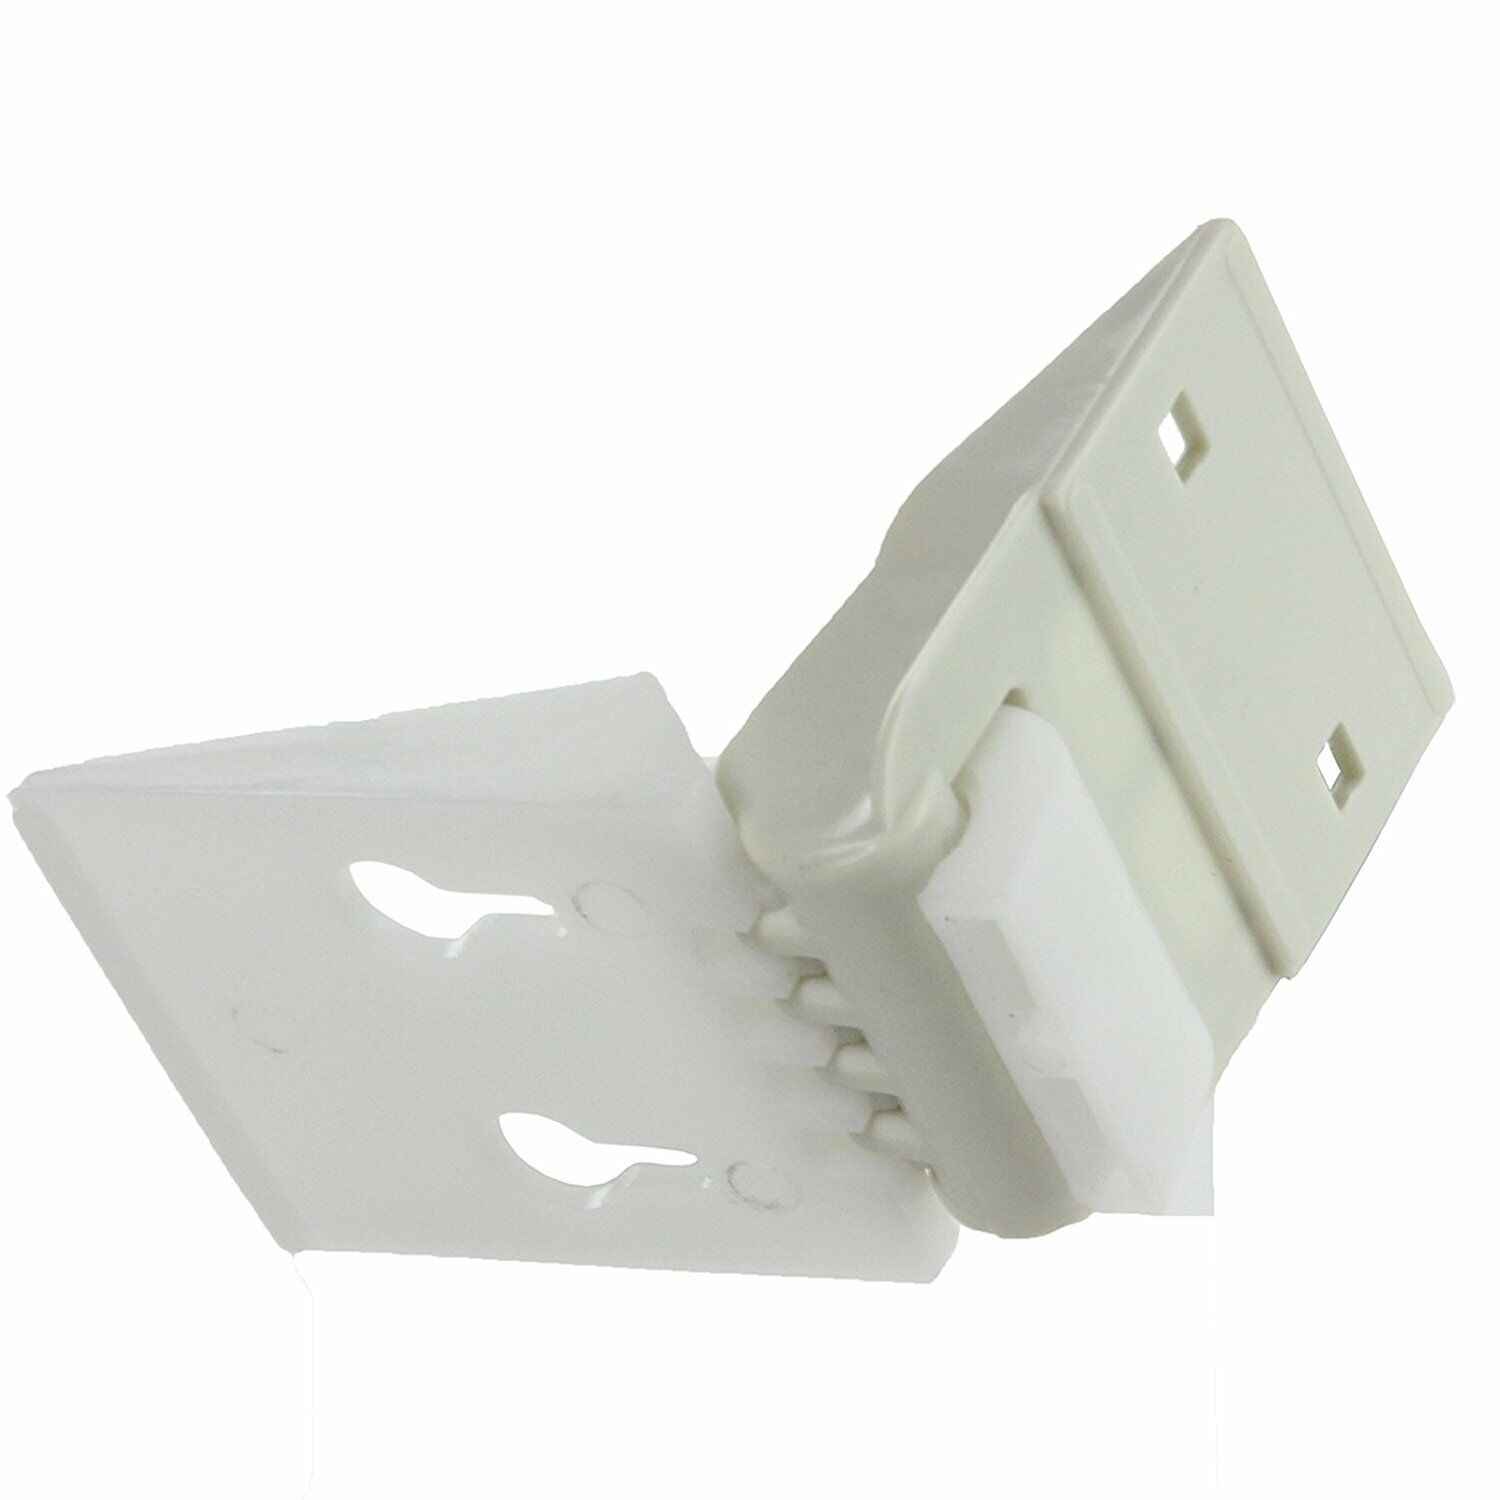 1 x Tricity /& Norfros​t Chest Freezer Lid Hinge